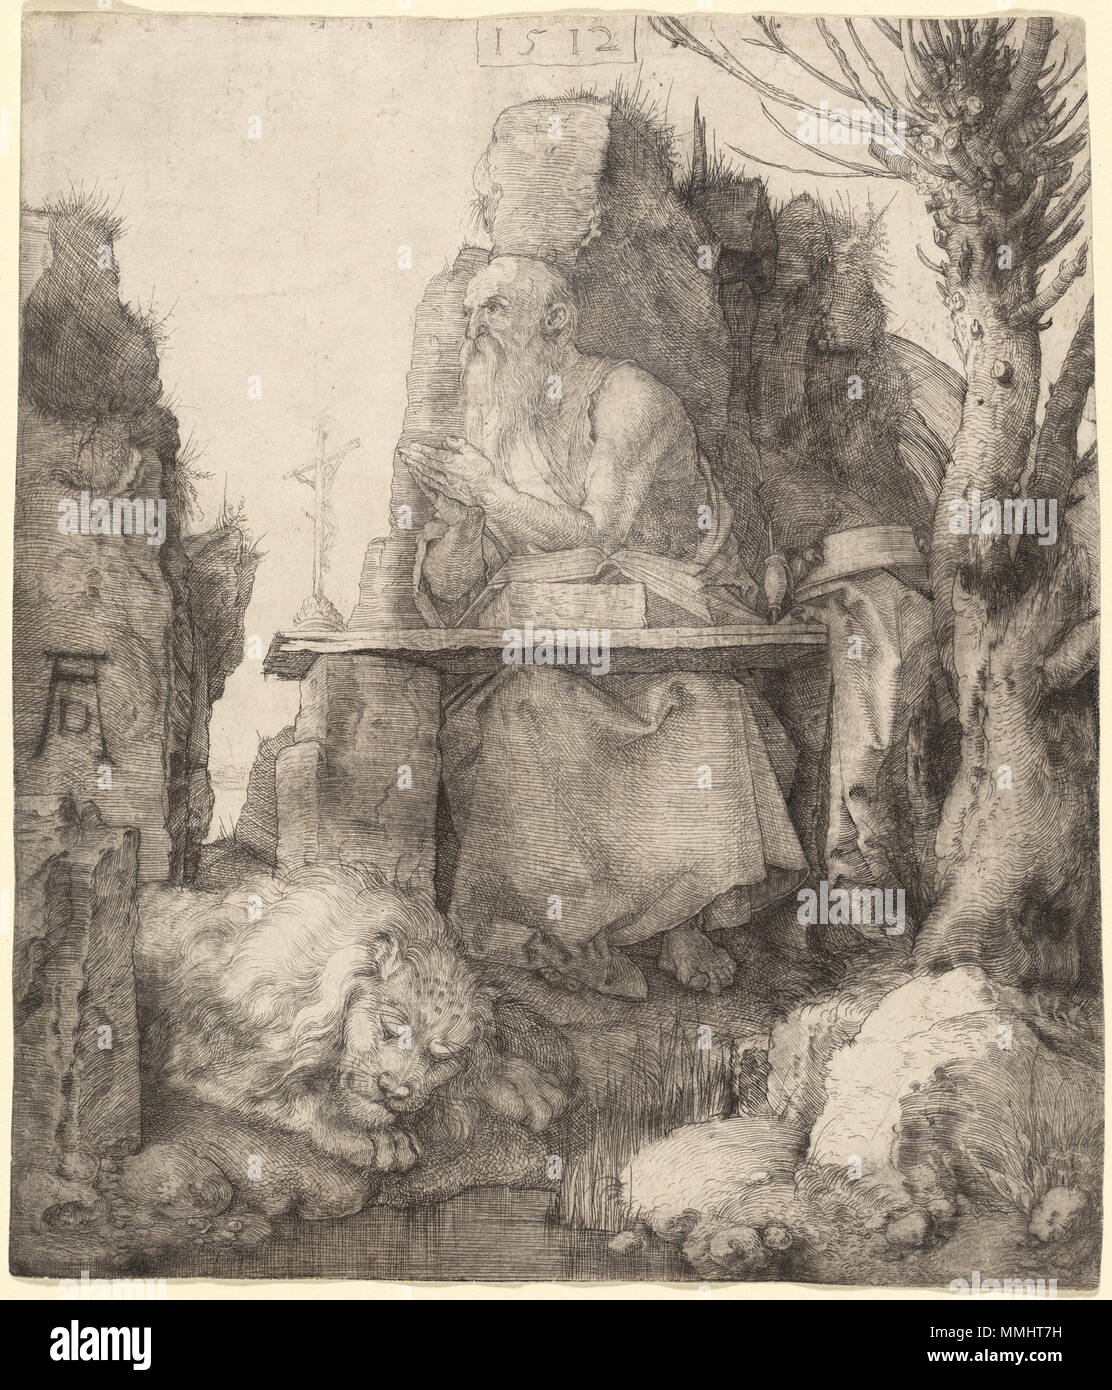 C11866.jpg Albrecht Dürer, Saint Jerome by the Pollard Willow, German, 1471 - 1528, 1512, drypoint, Rosenwald Collection Albrecht Dürer - Saint Jerome by the Pollard Willow (NGA 1943.3.3515) - Stock Image